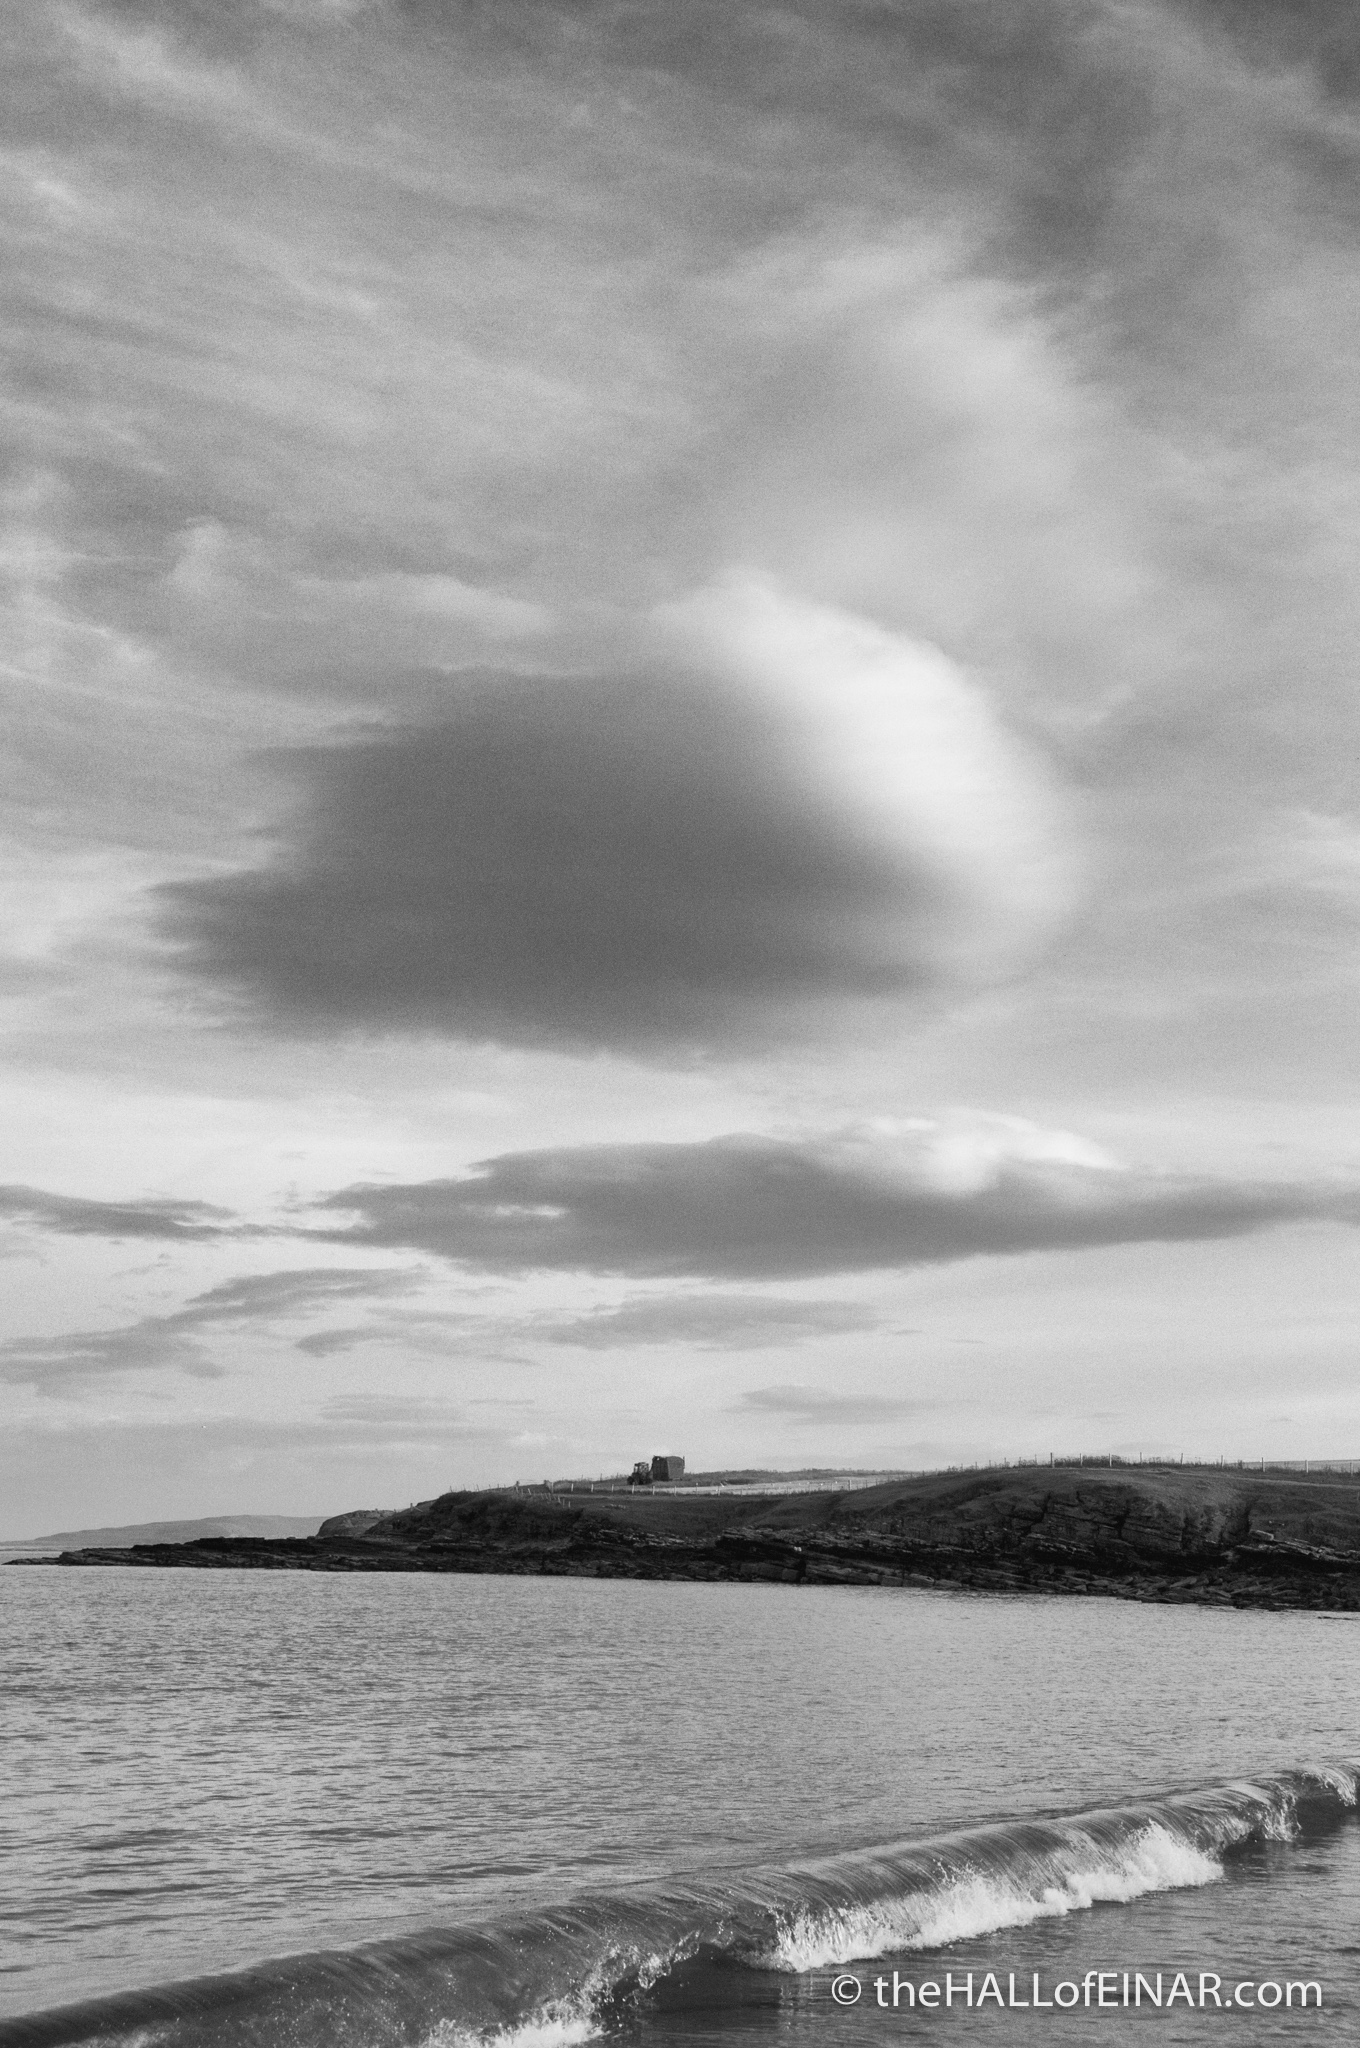 Waves break and clouds gather - photograph (c) 2016 David Bailey (not the)